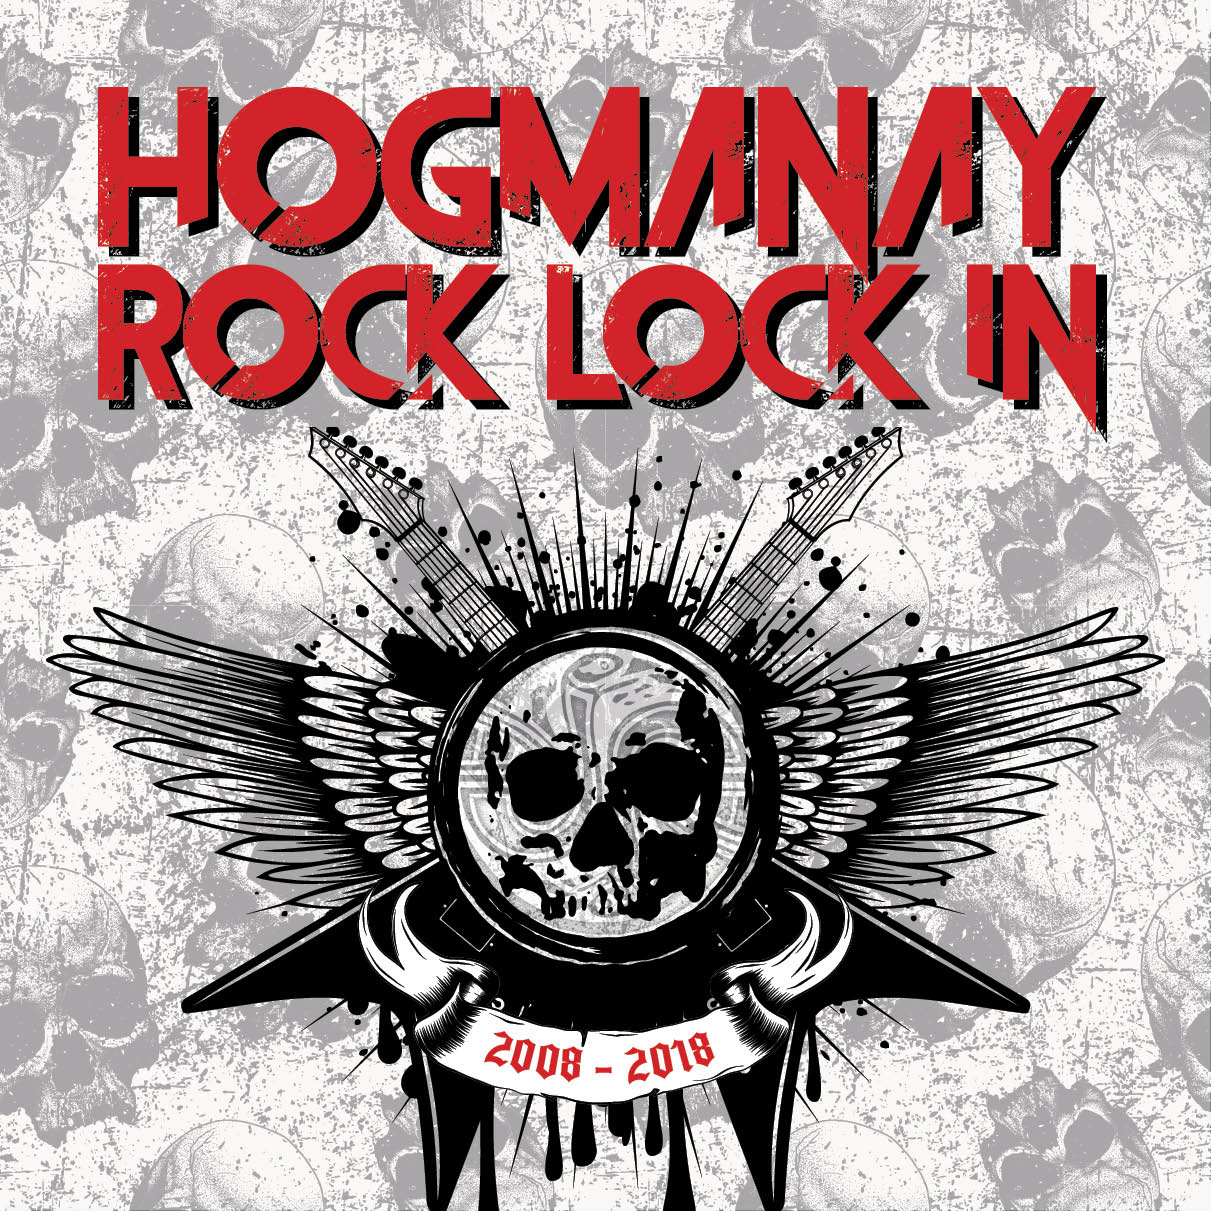 WAXY'S HOGMANAY ROCK LOCK-IN!